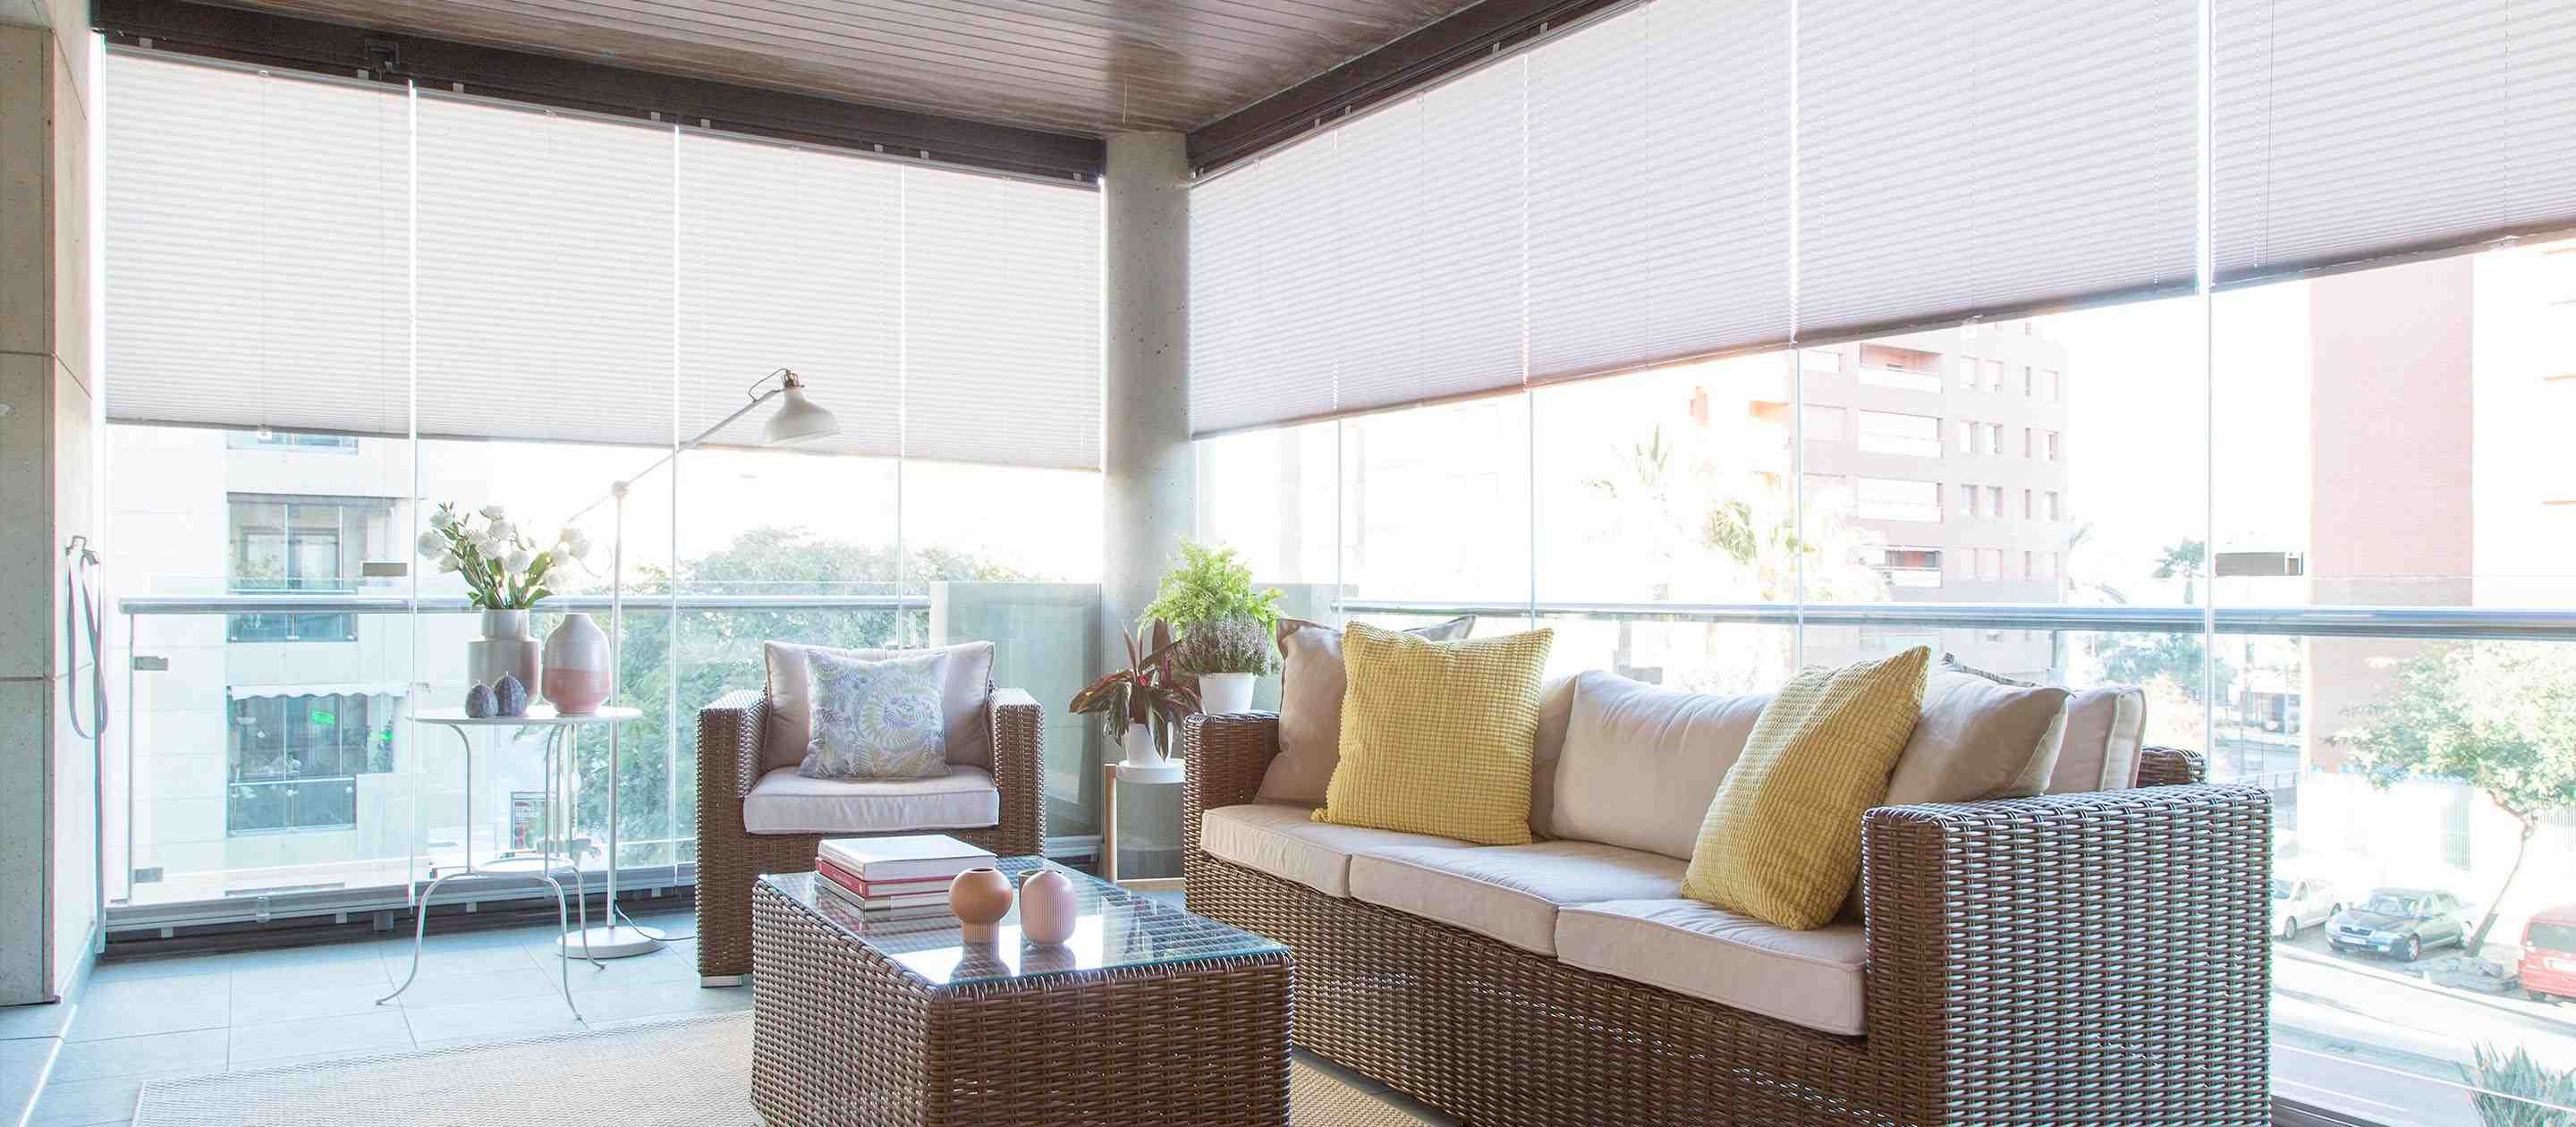 Balcony with glass curtains and Lumon shades